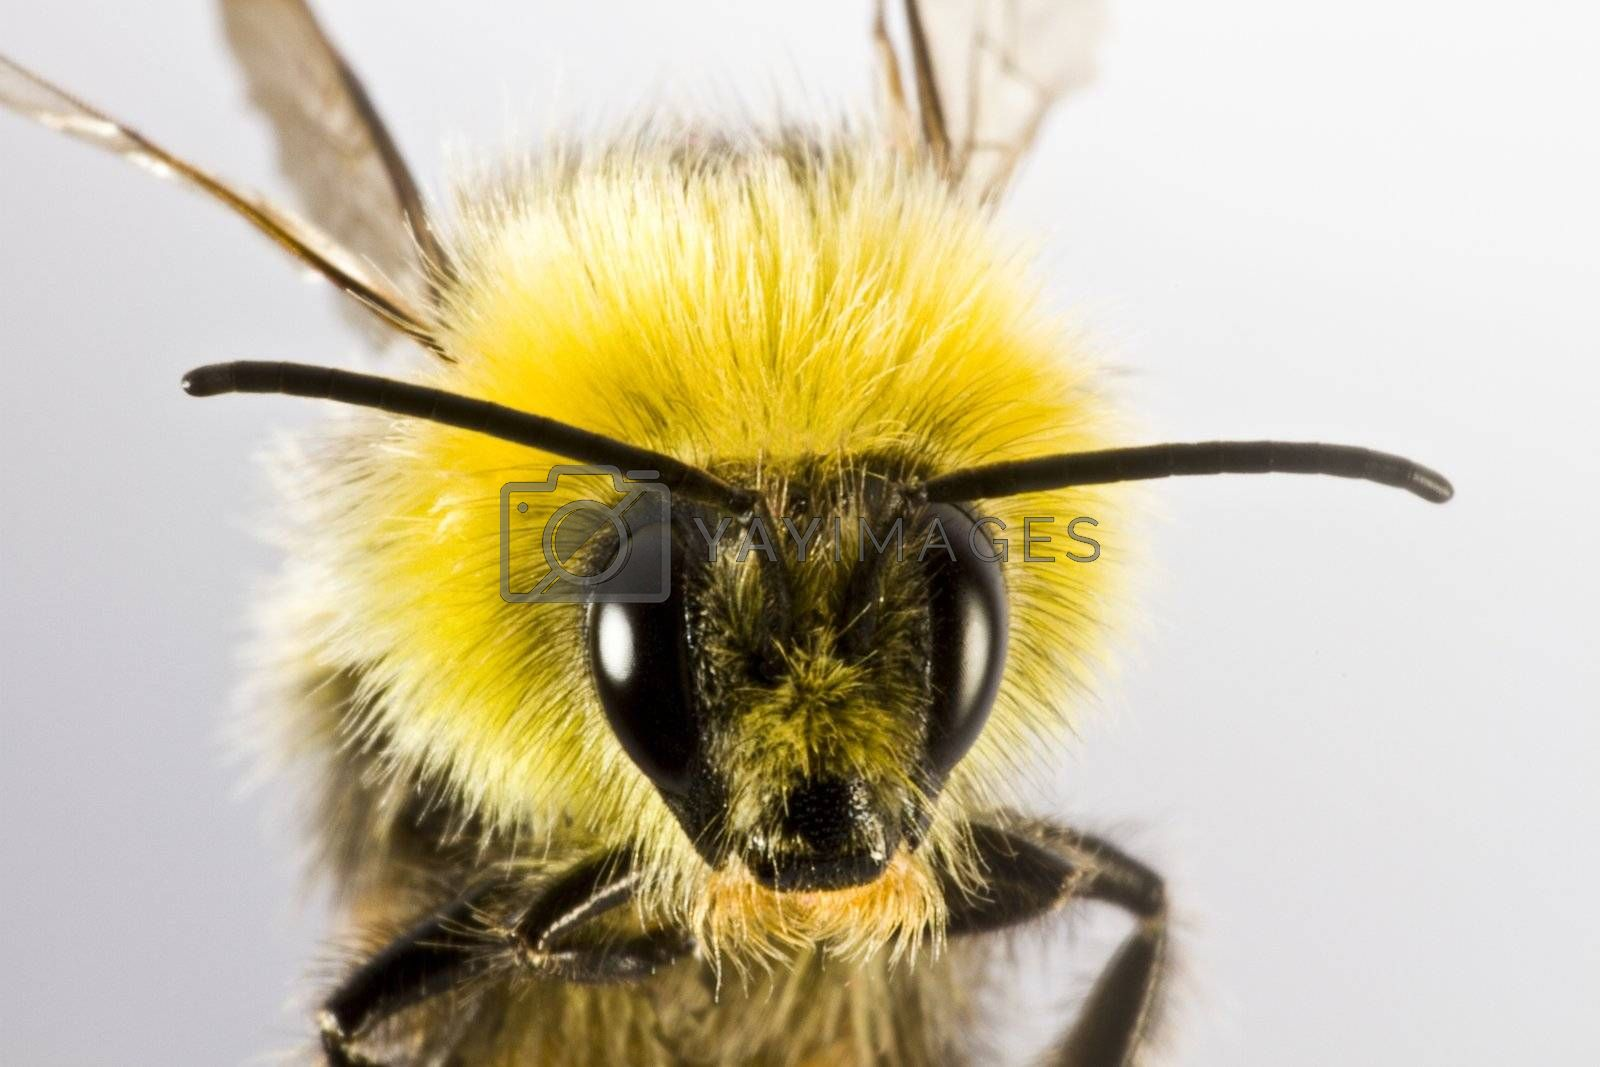 bumblebee in close up on light background